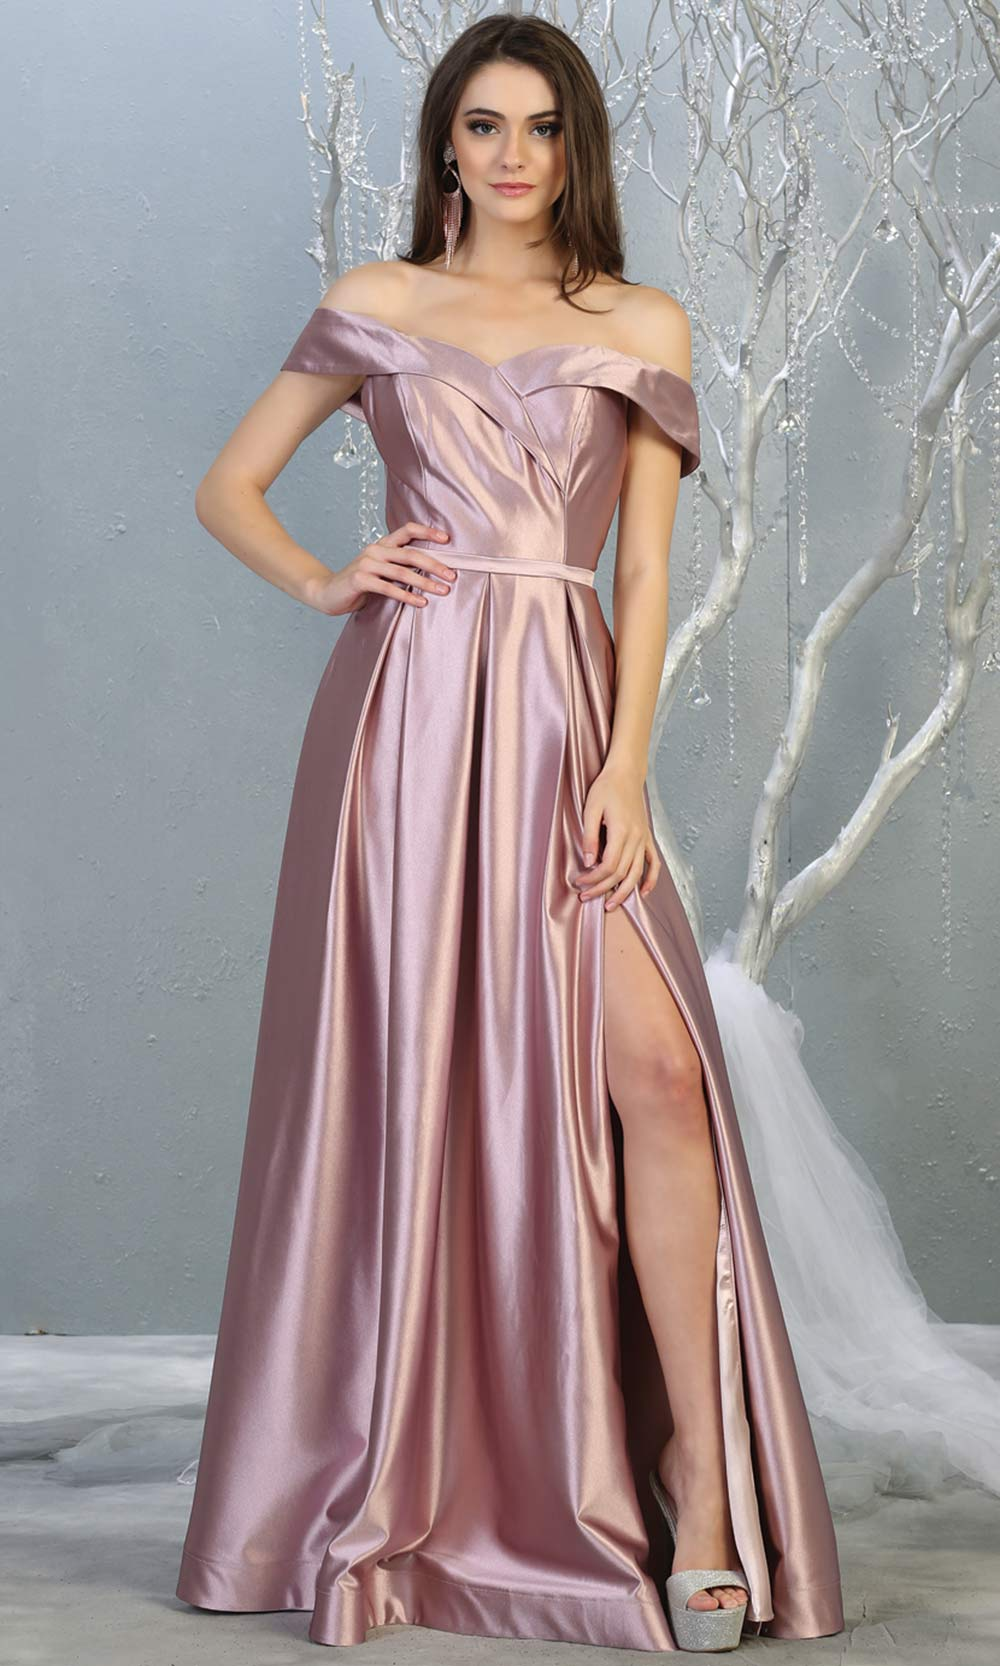 Mayqueen MQ 1781 long mauve off shoulder evening flowy dress w/ high slit. Full length dusty rose satin gown is perfect for  enagagement/e-shoot dress, formal wedding guest, indowestern gown, evening party dress, prom, bridesmaid. Plus sizes avail.jpg